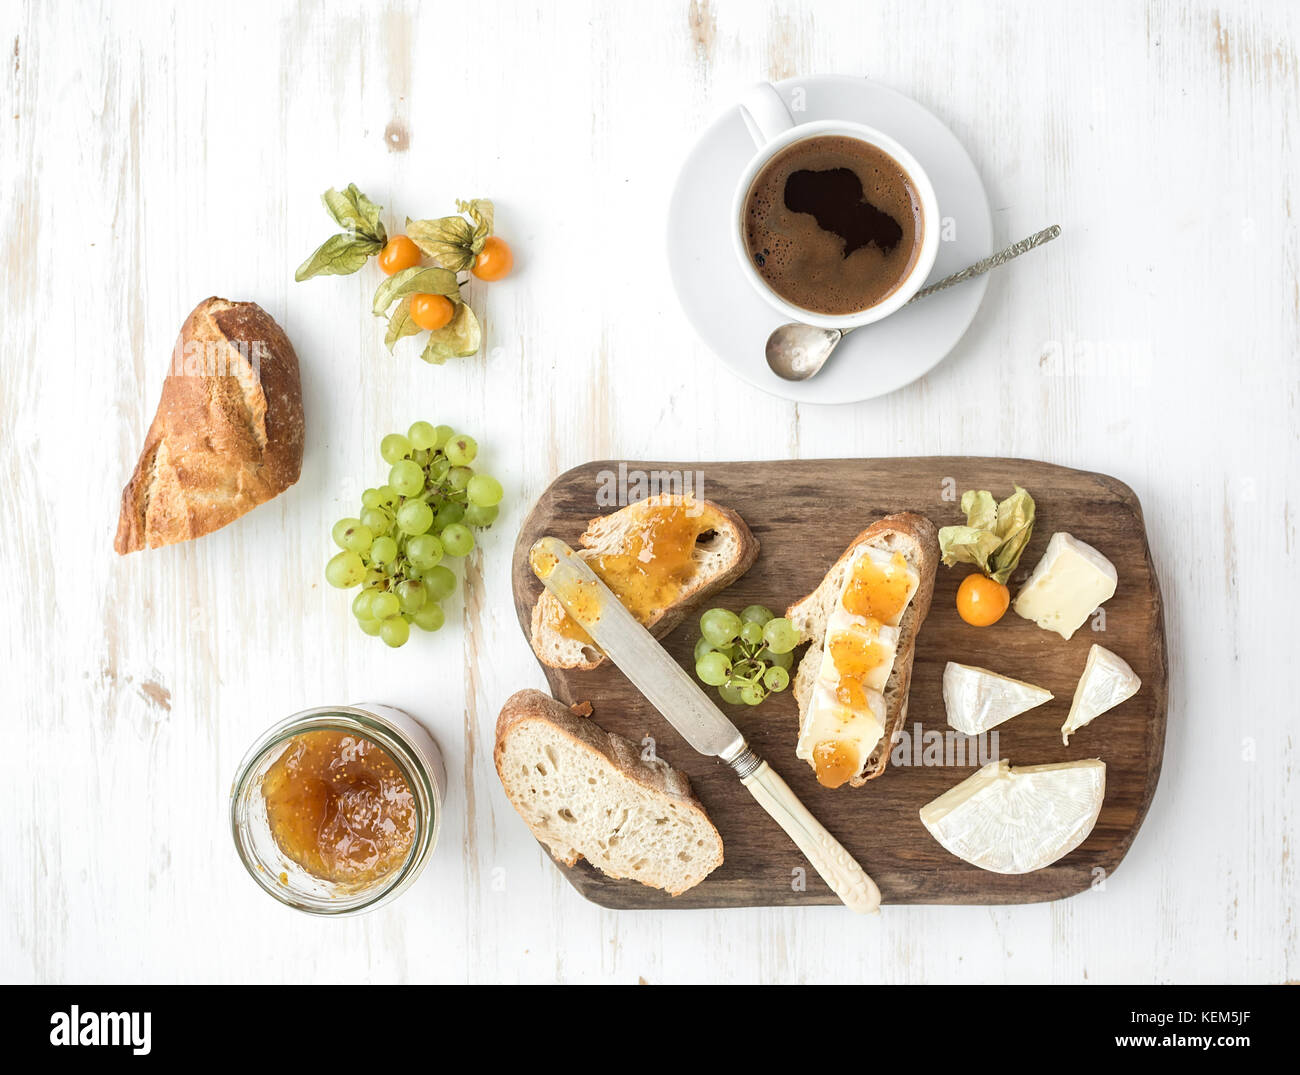 Breakfast set. Brie cheese and fig jam sandwiches with fresh grapes, ground cherries. Cup of coffee. Top view - Stock Image